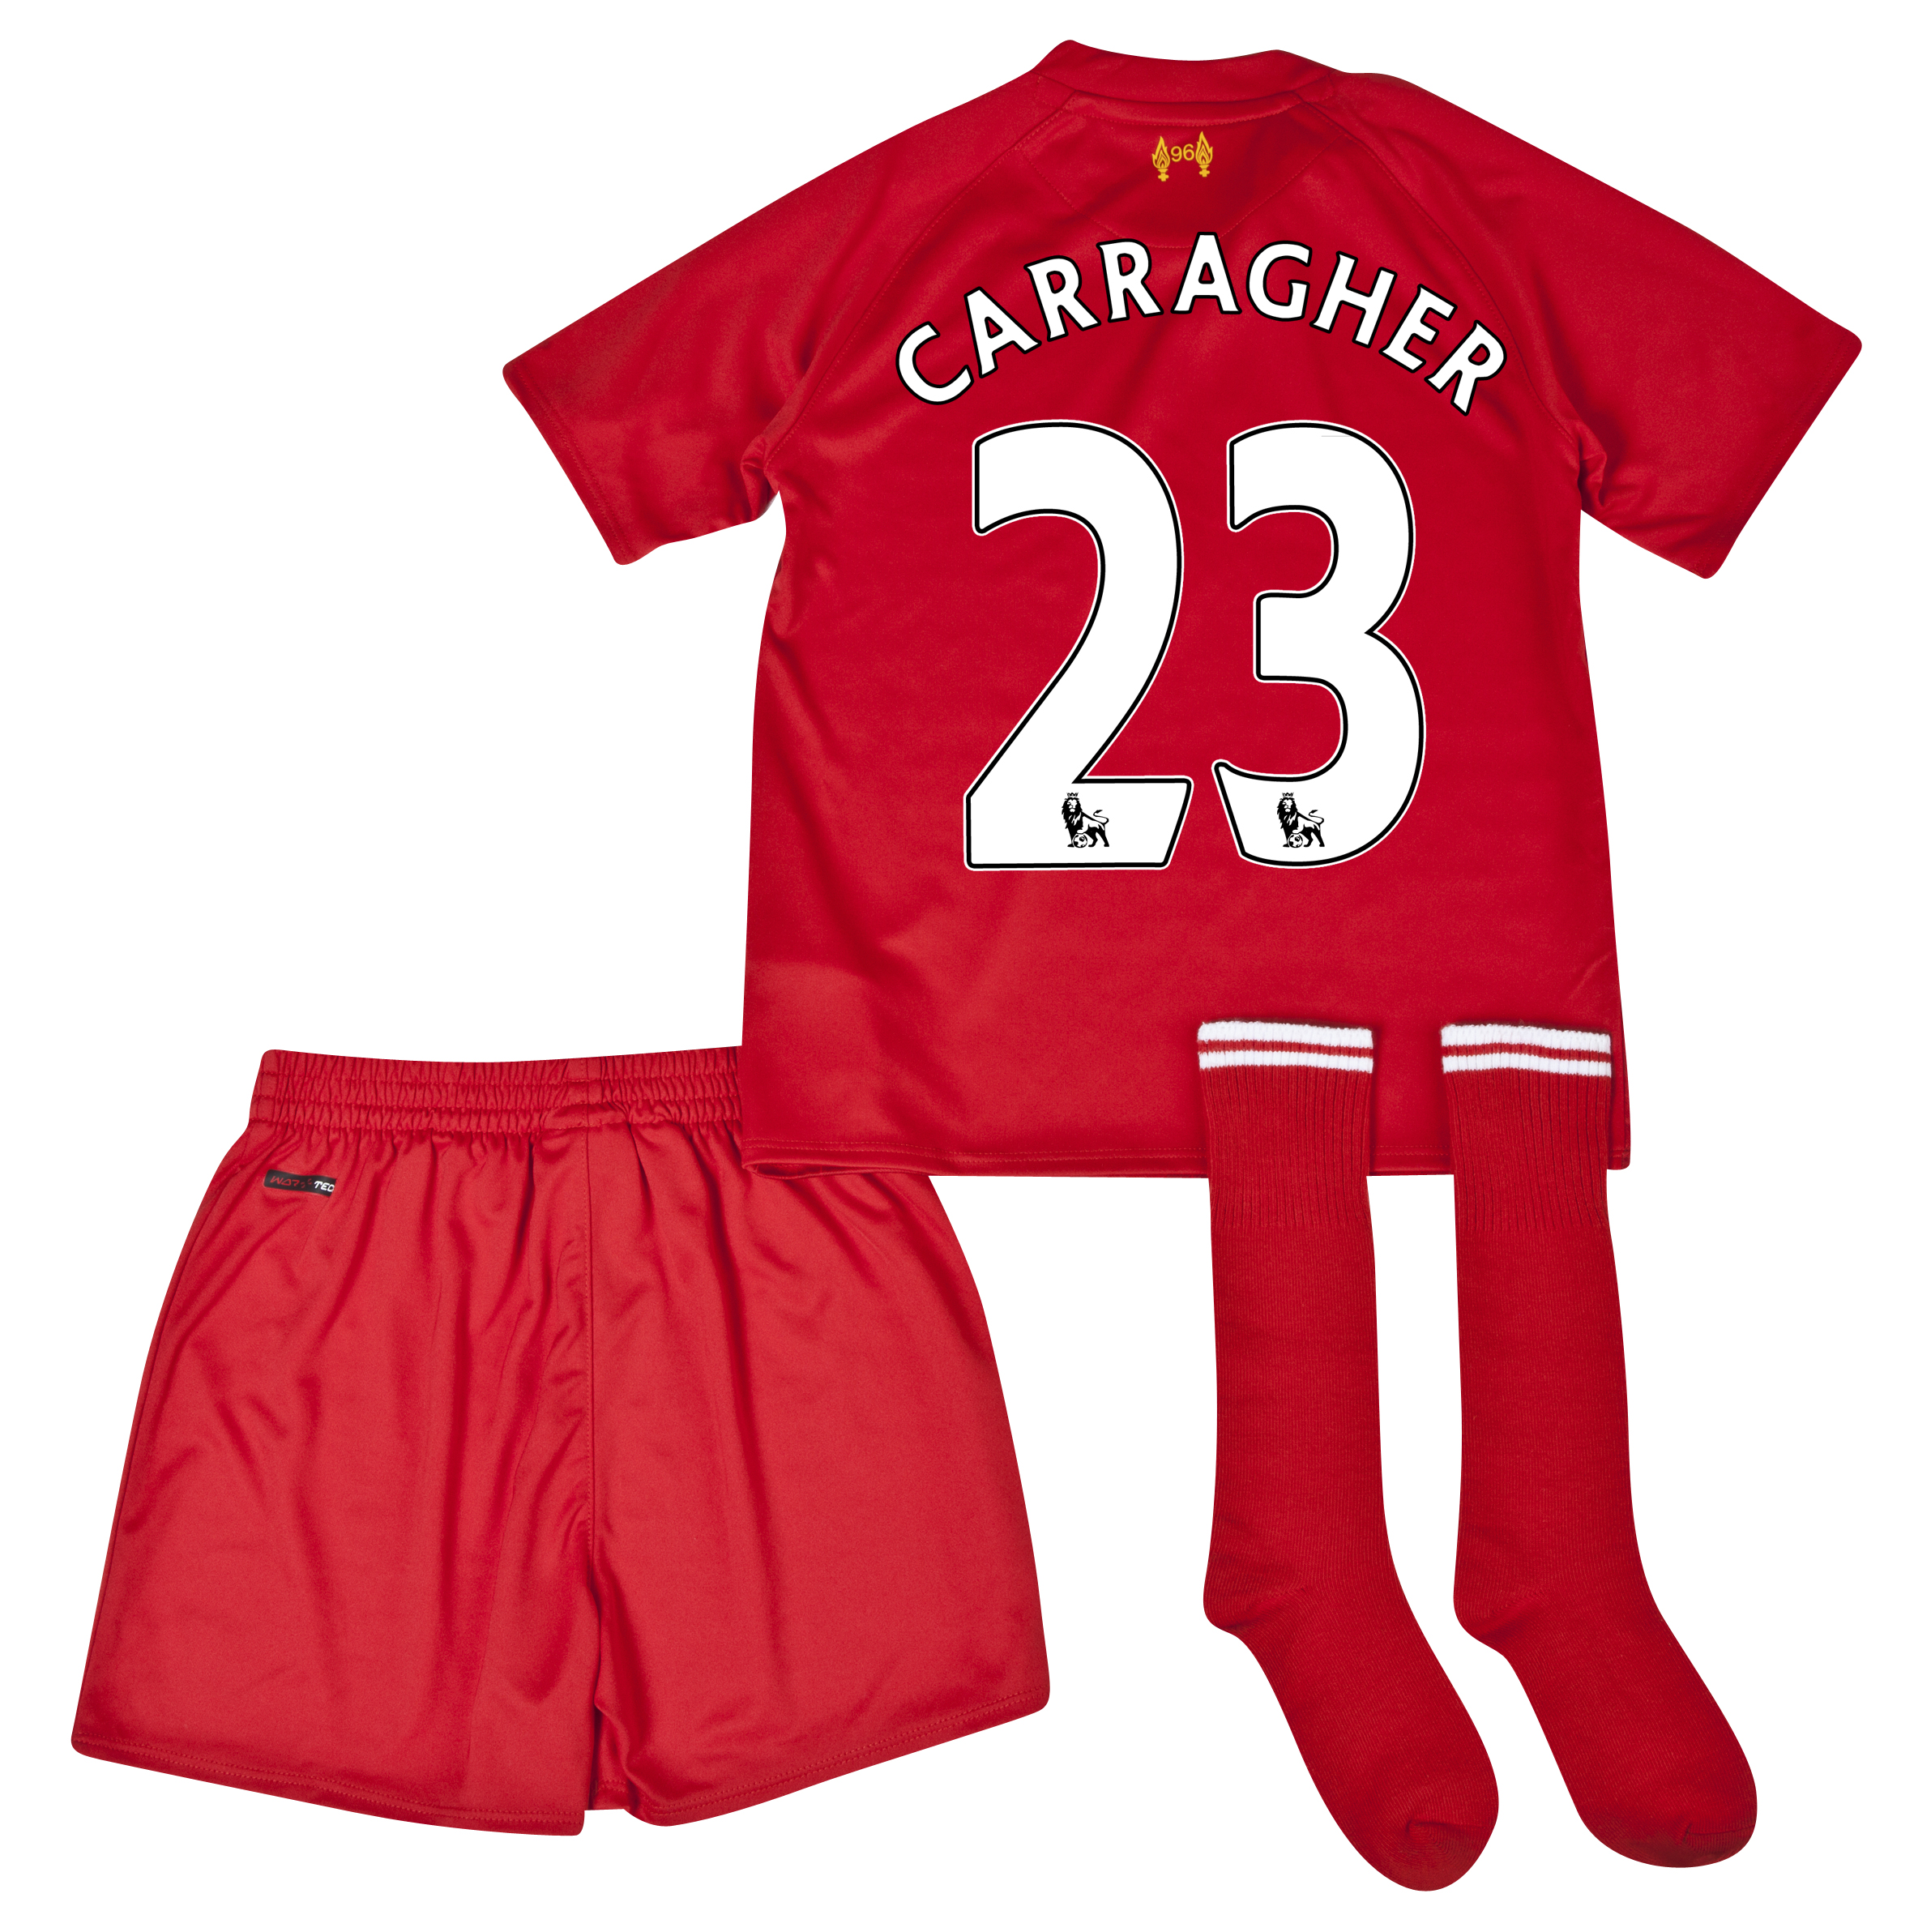 Liverpool Home Infant Kit 2013/14 with Carragher 23 printing